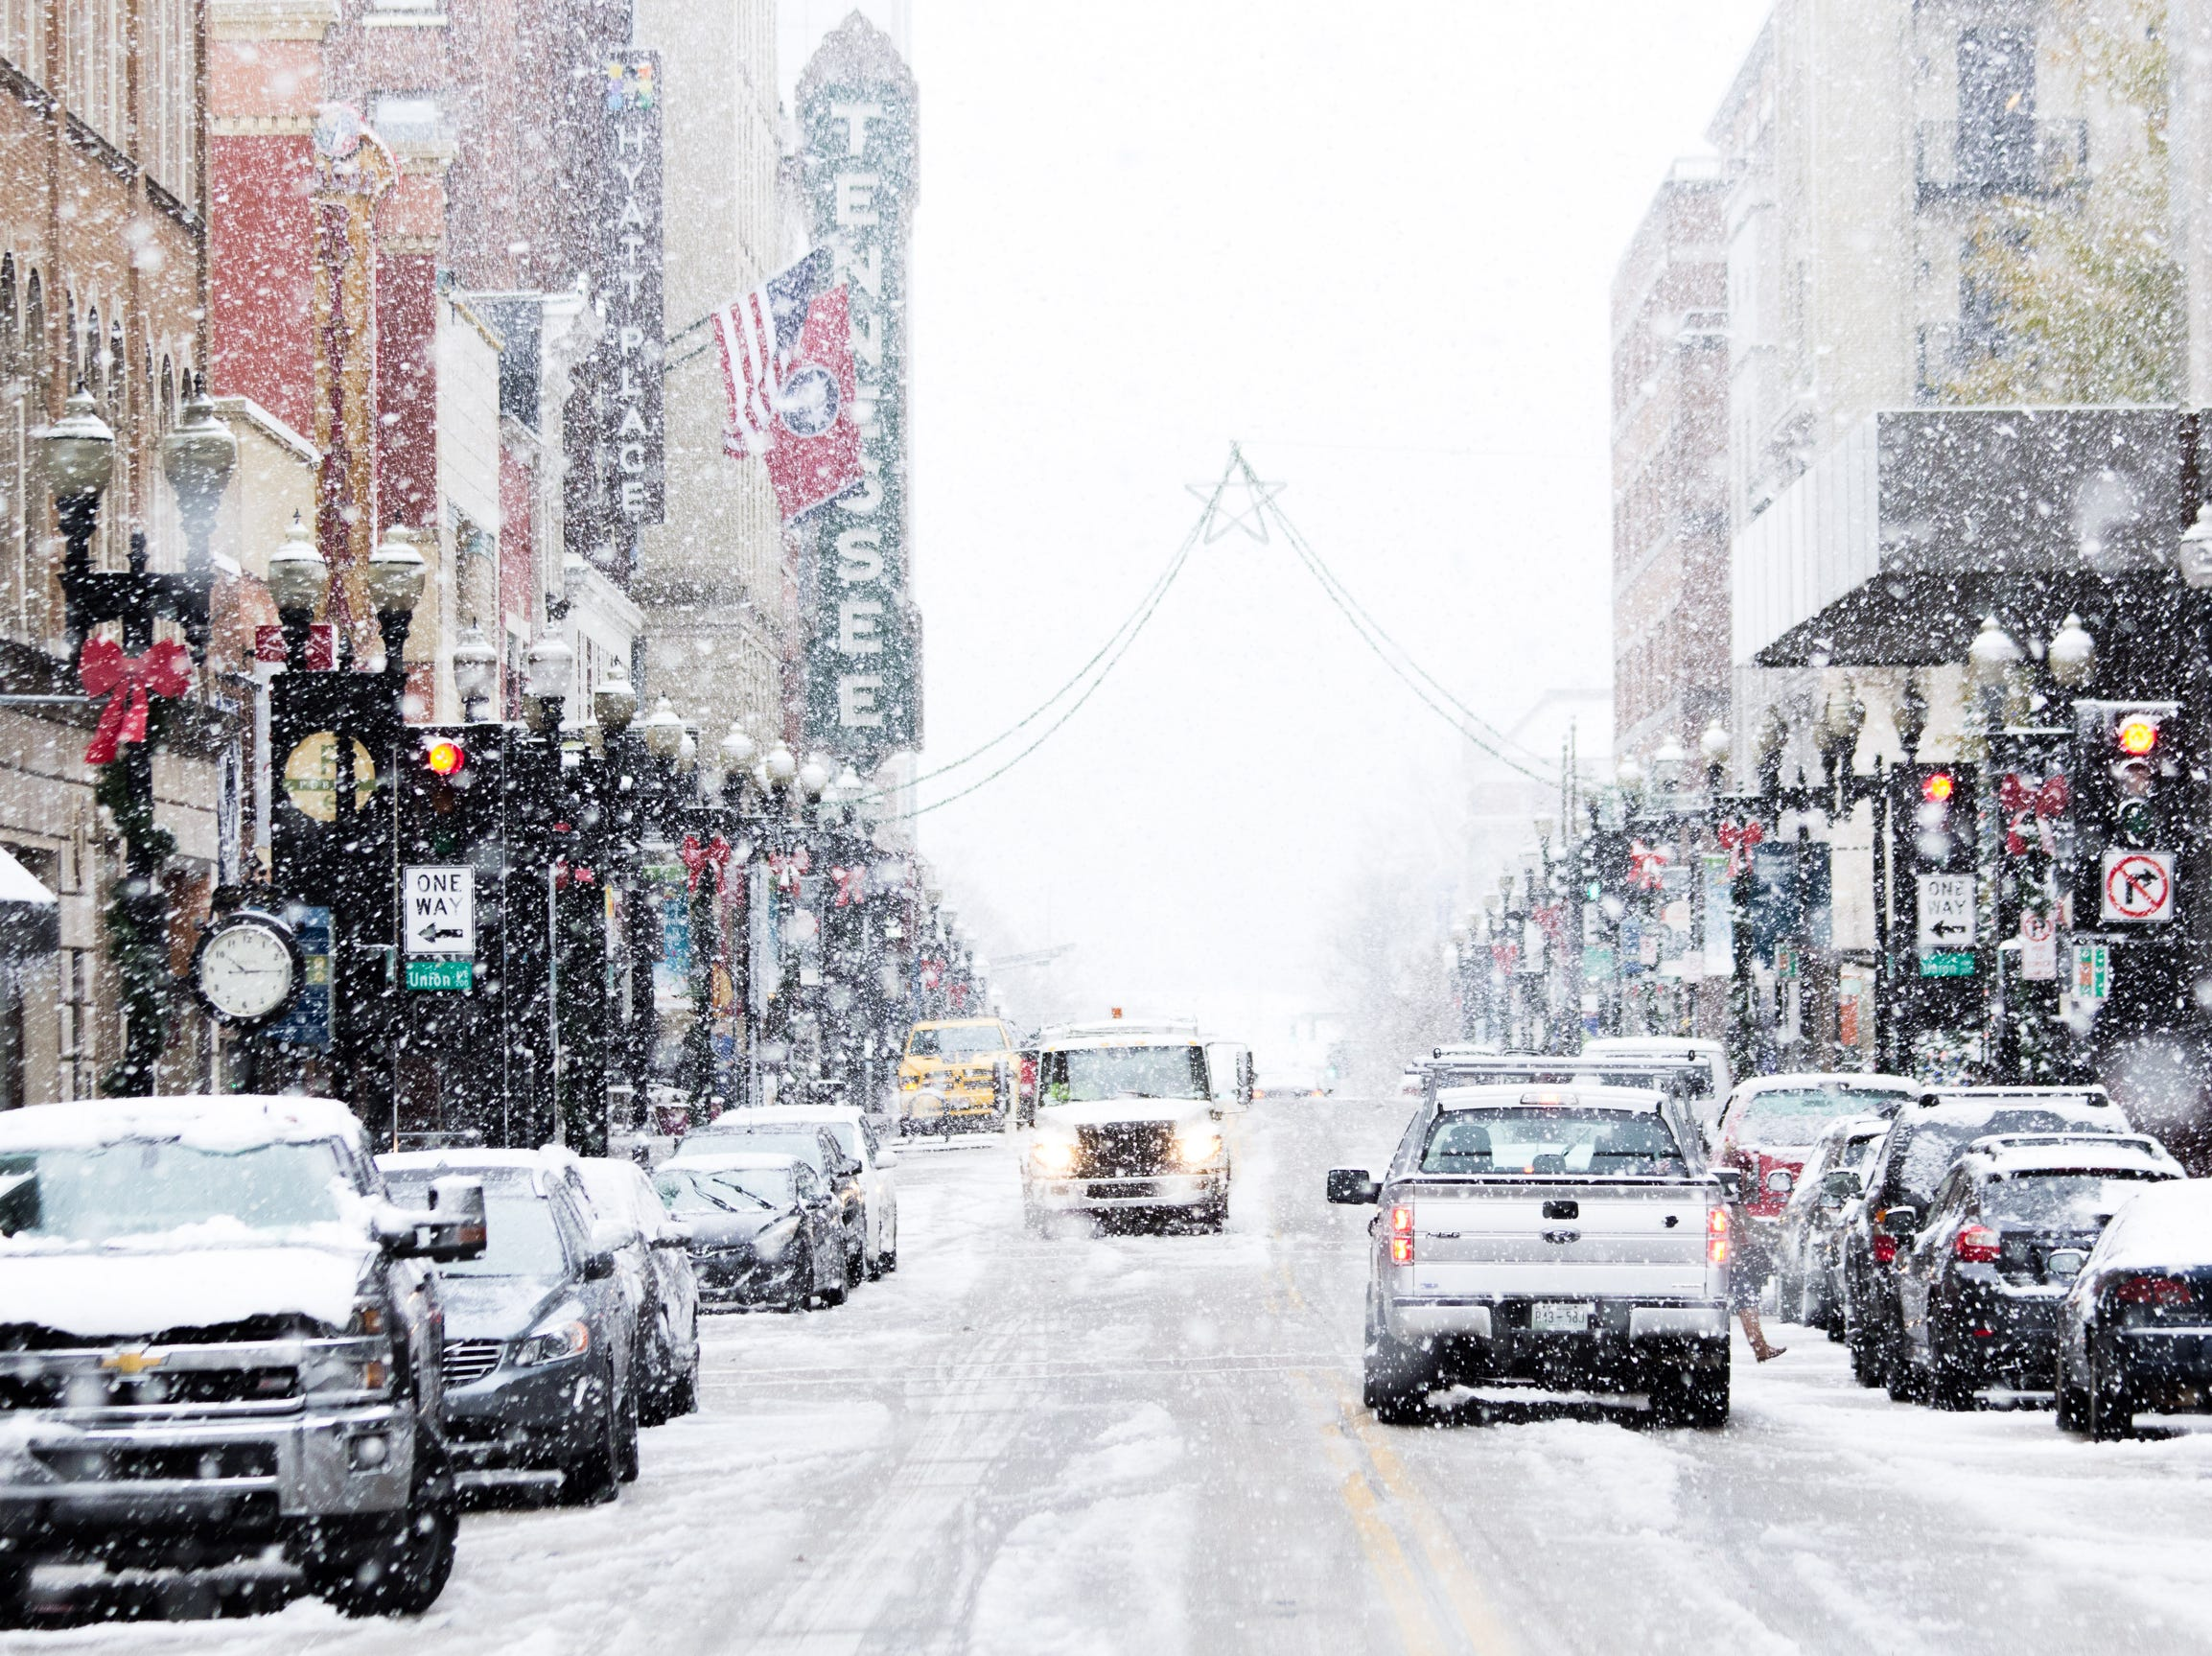 Snow flurries fall on Gay St. as Knoxville, Tenn., Sunday, receives the season's first snow fall.